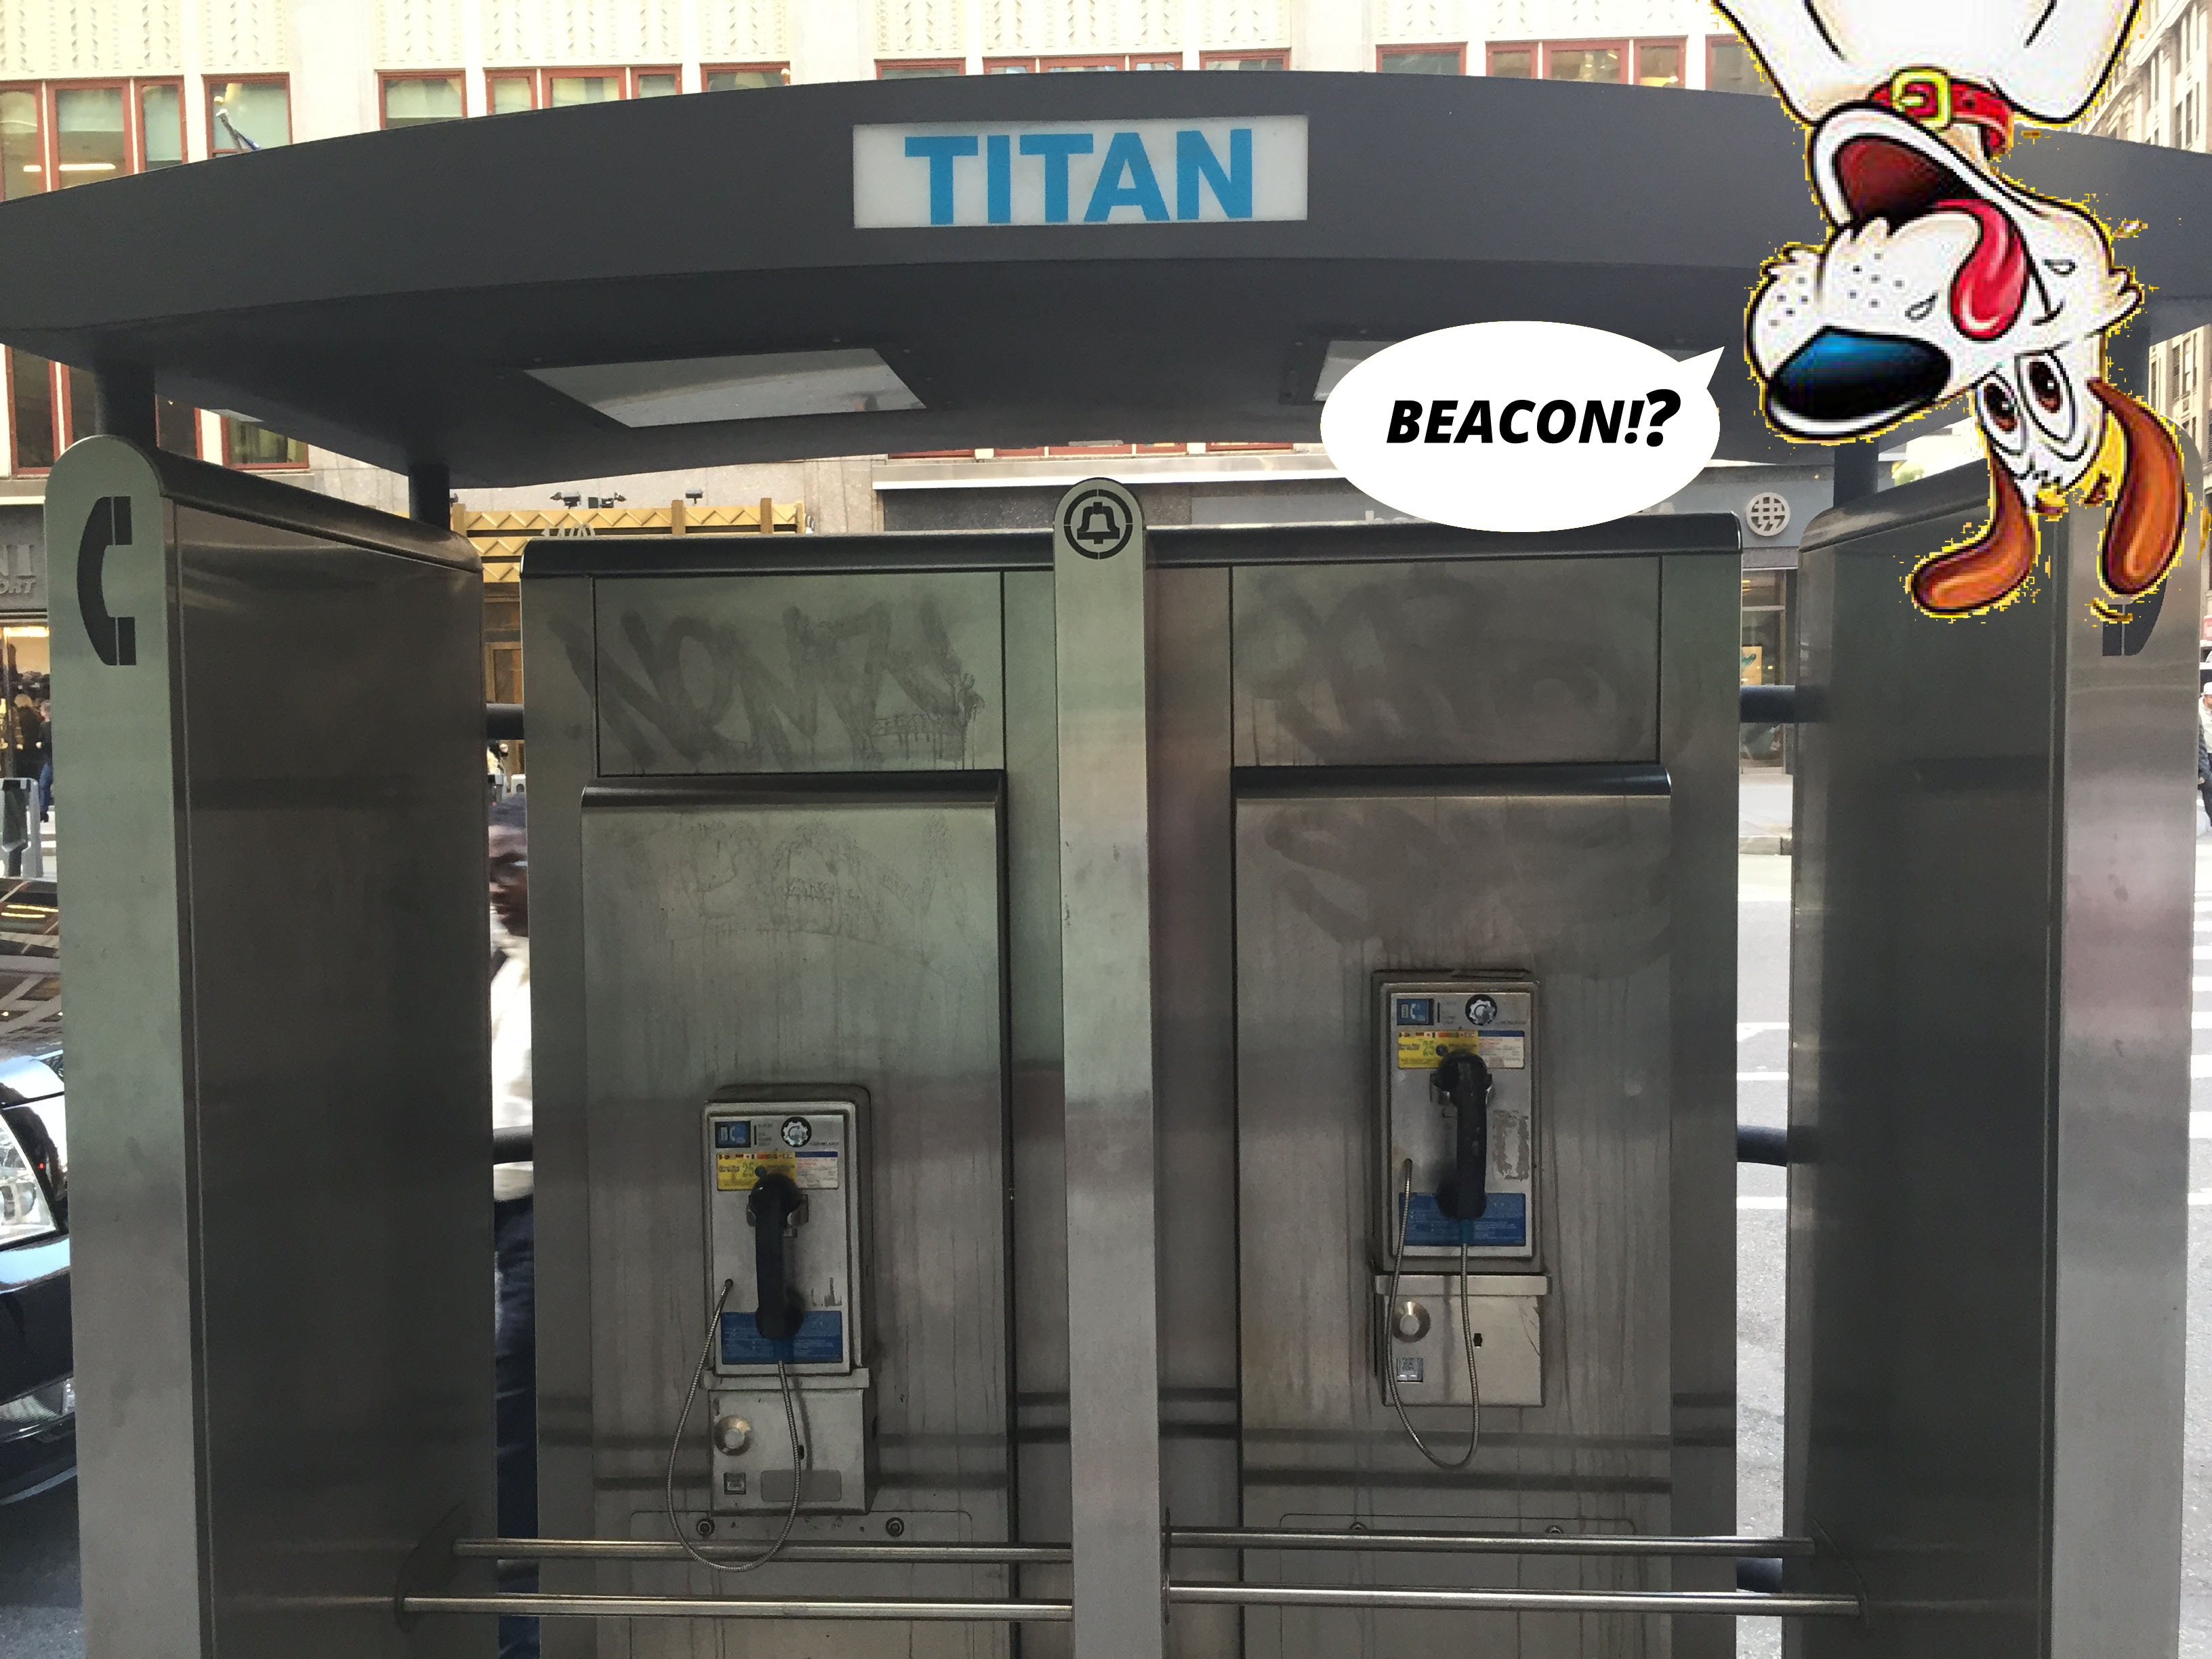 Beacon Titan NYC